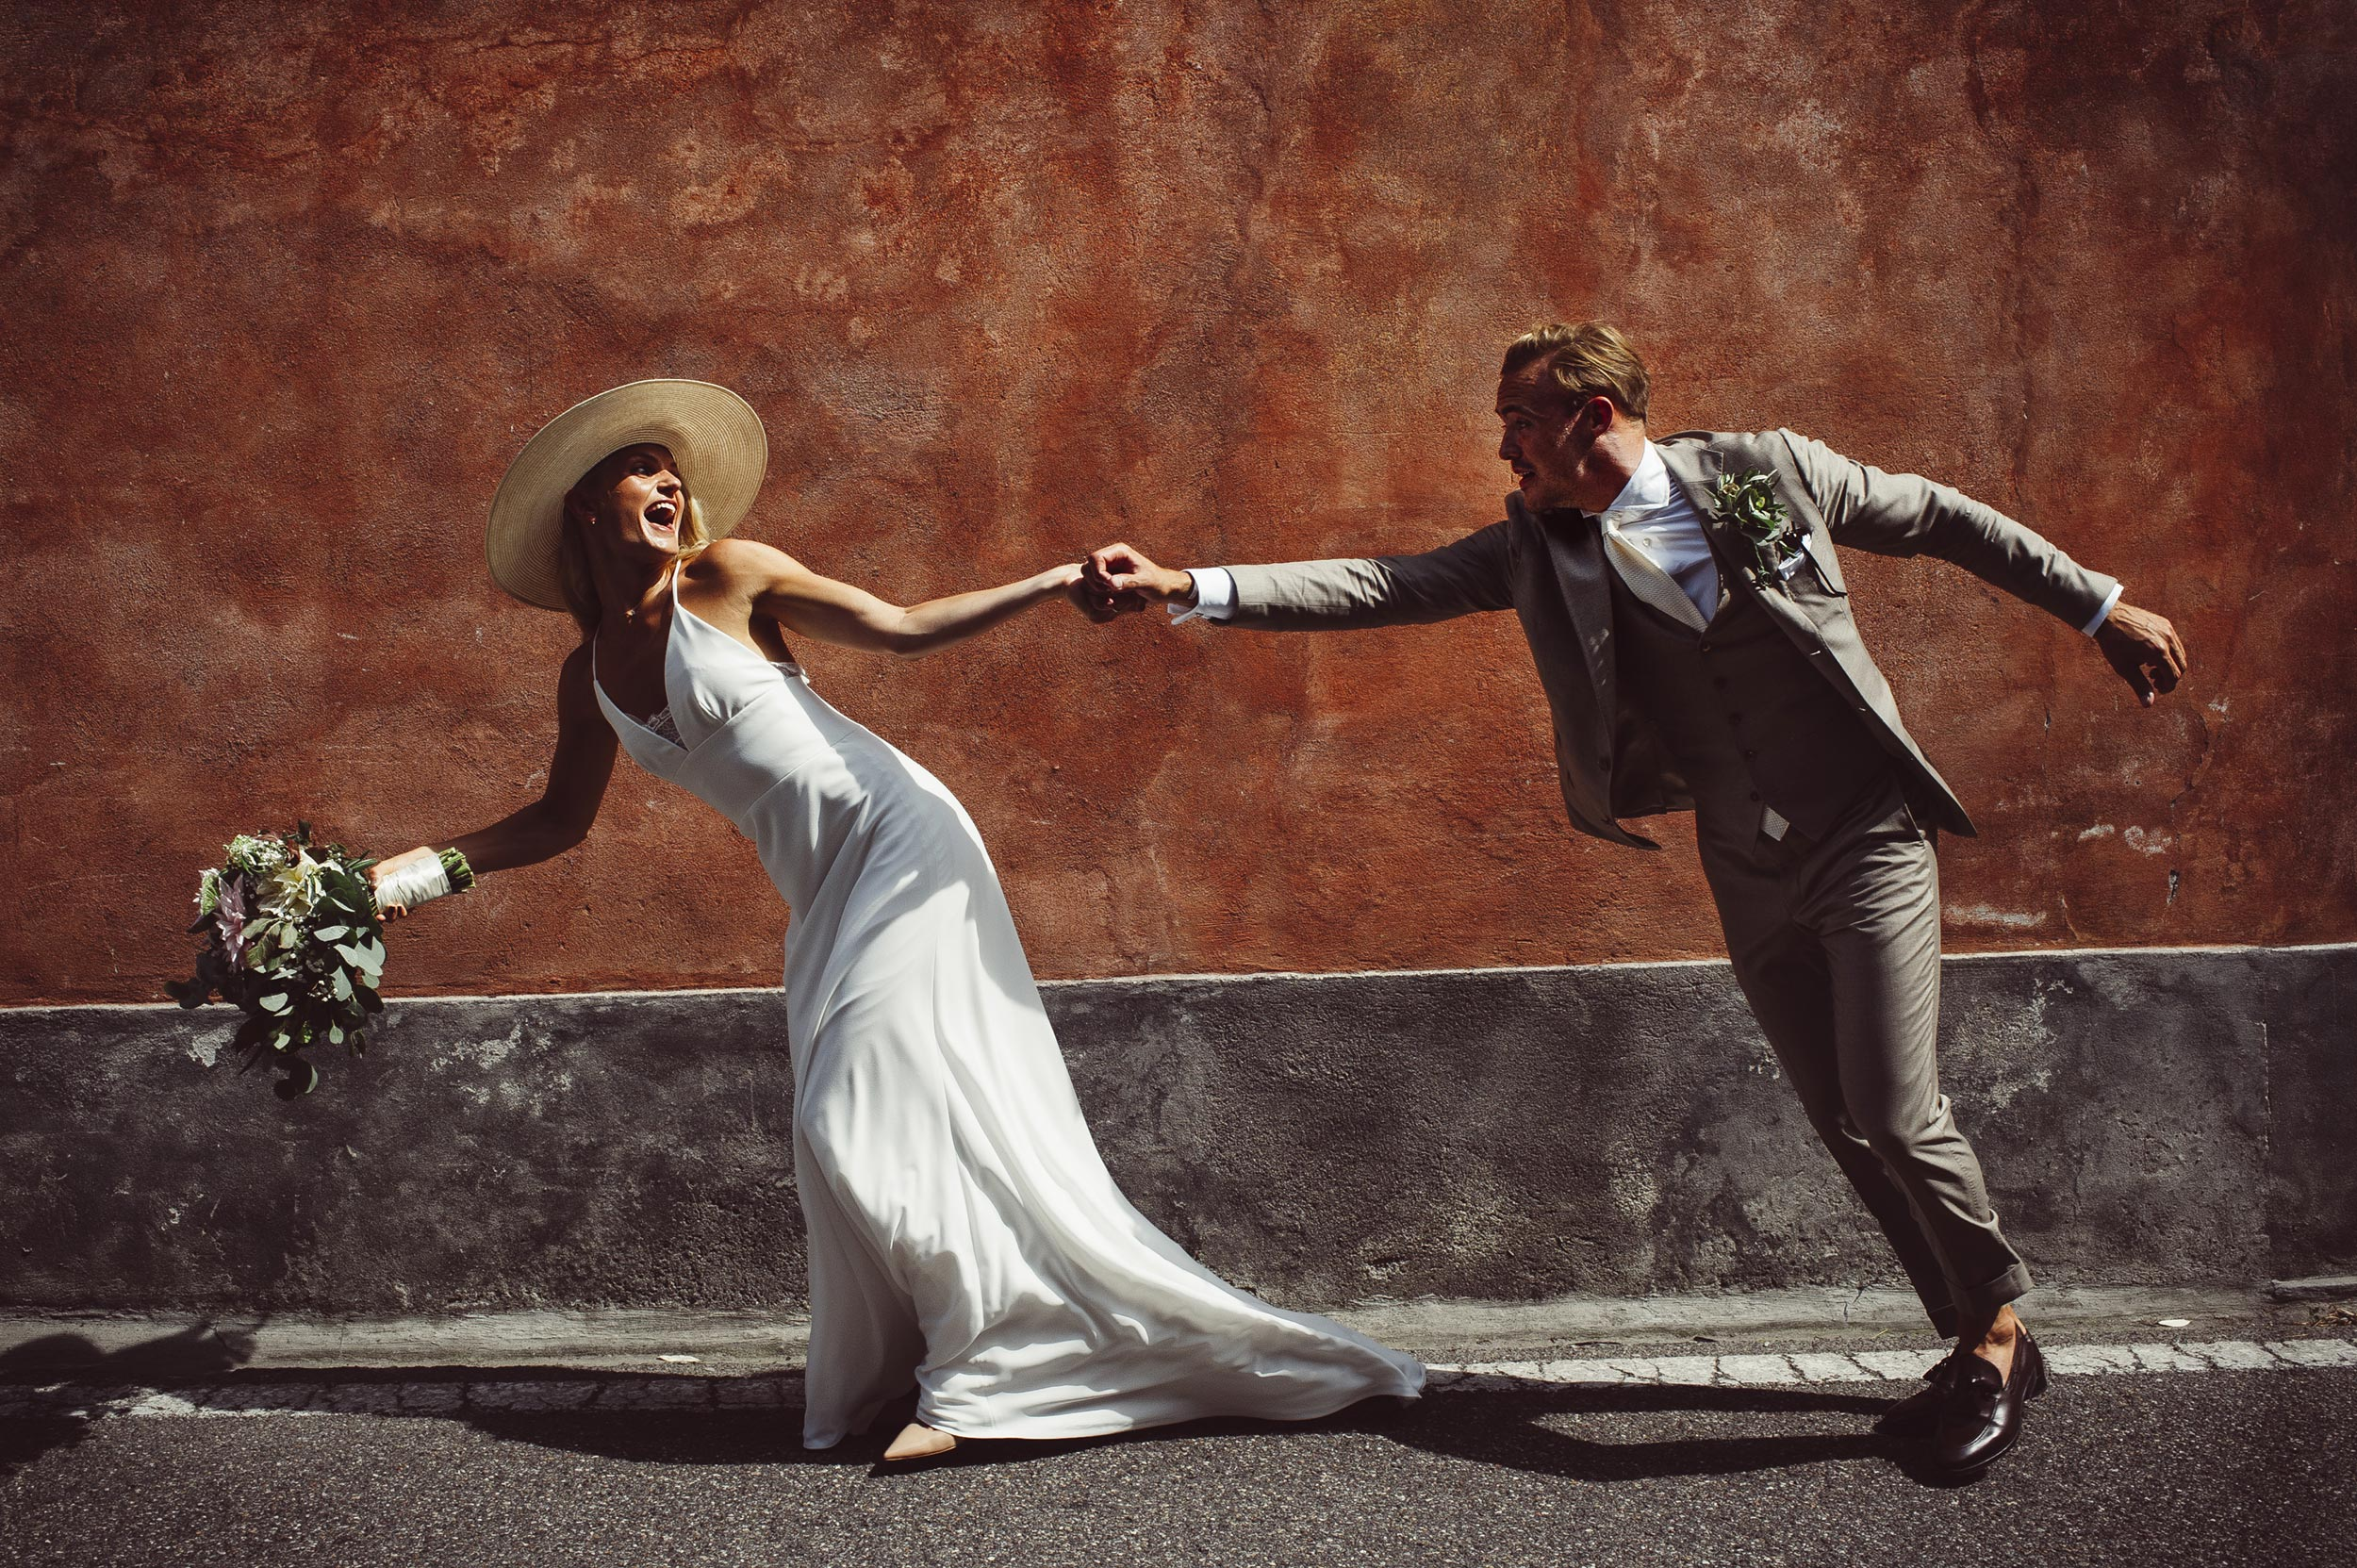 lake-como-wedding-photographer-Alessandro-Avenali-bride-with-hat-grabs-the-groom-running-against-a-red-wall.jpg